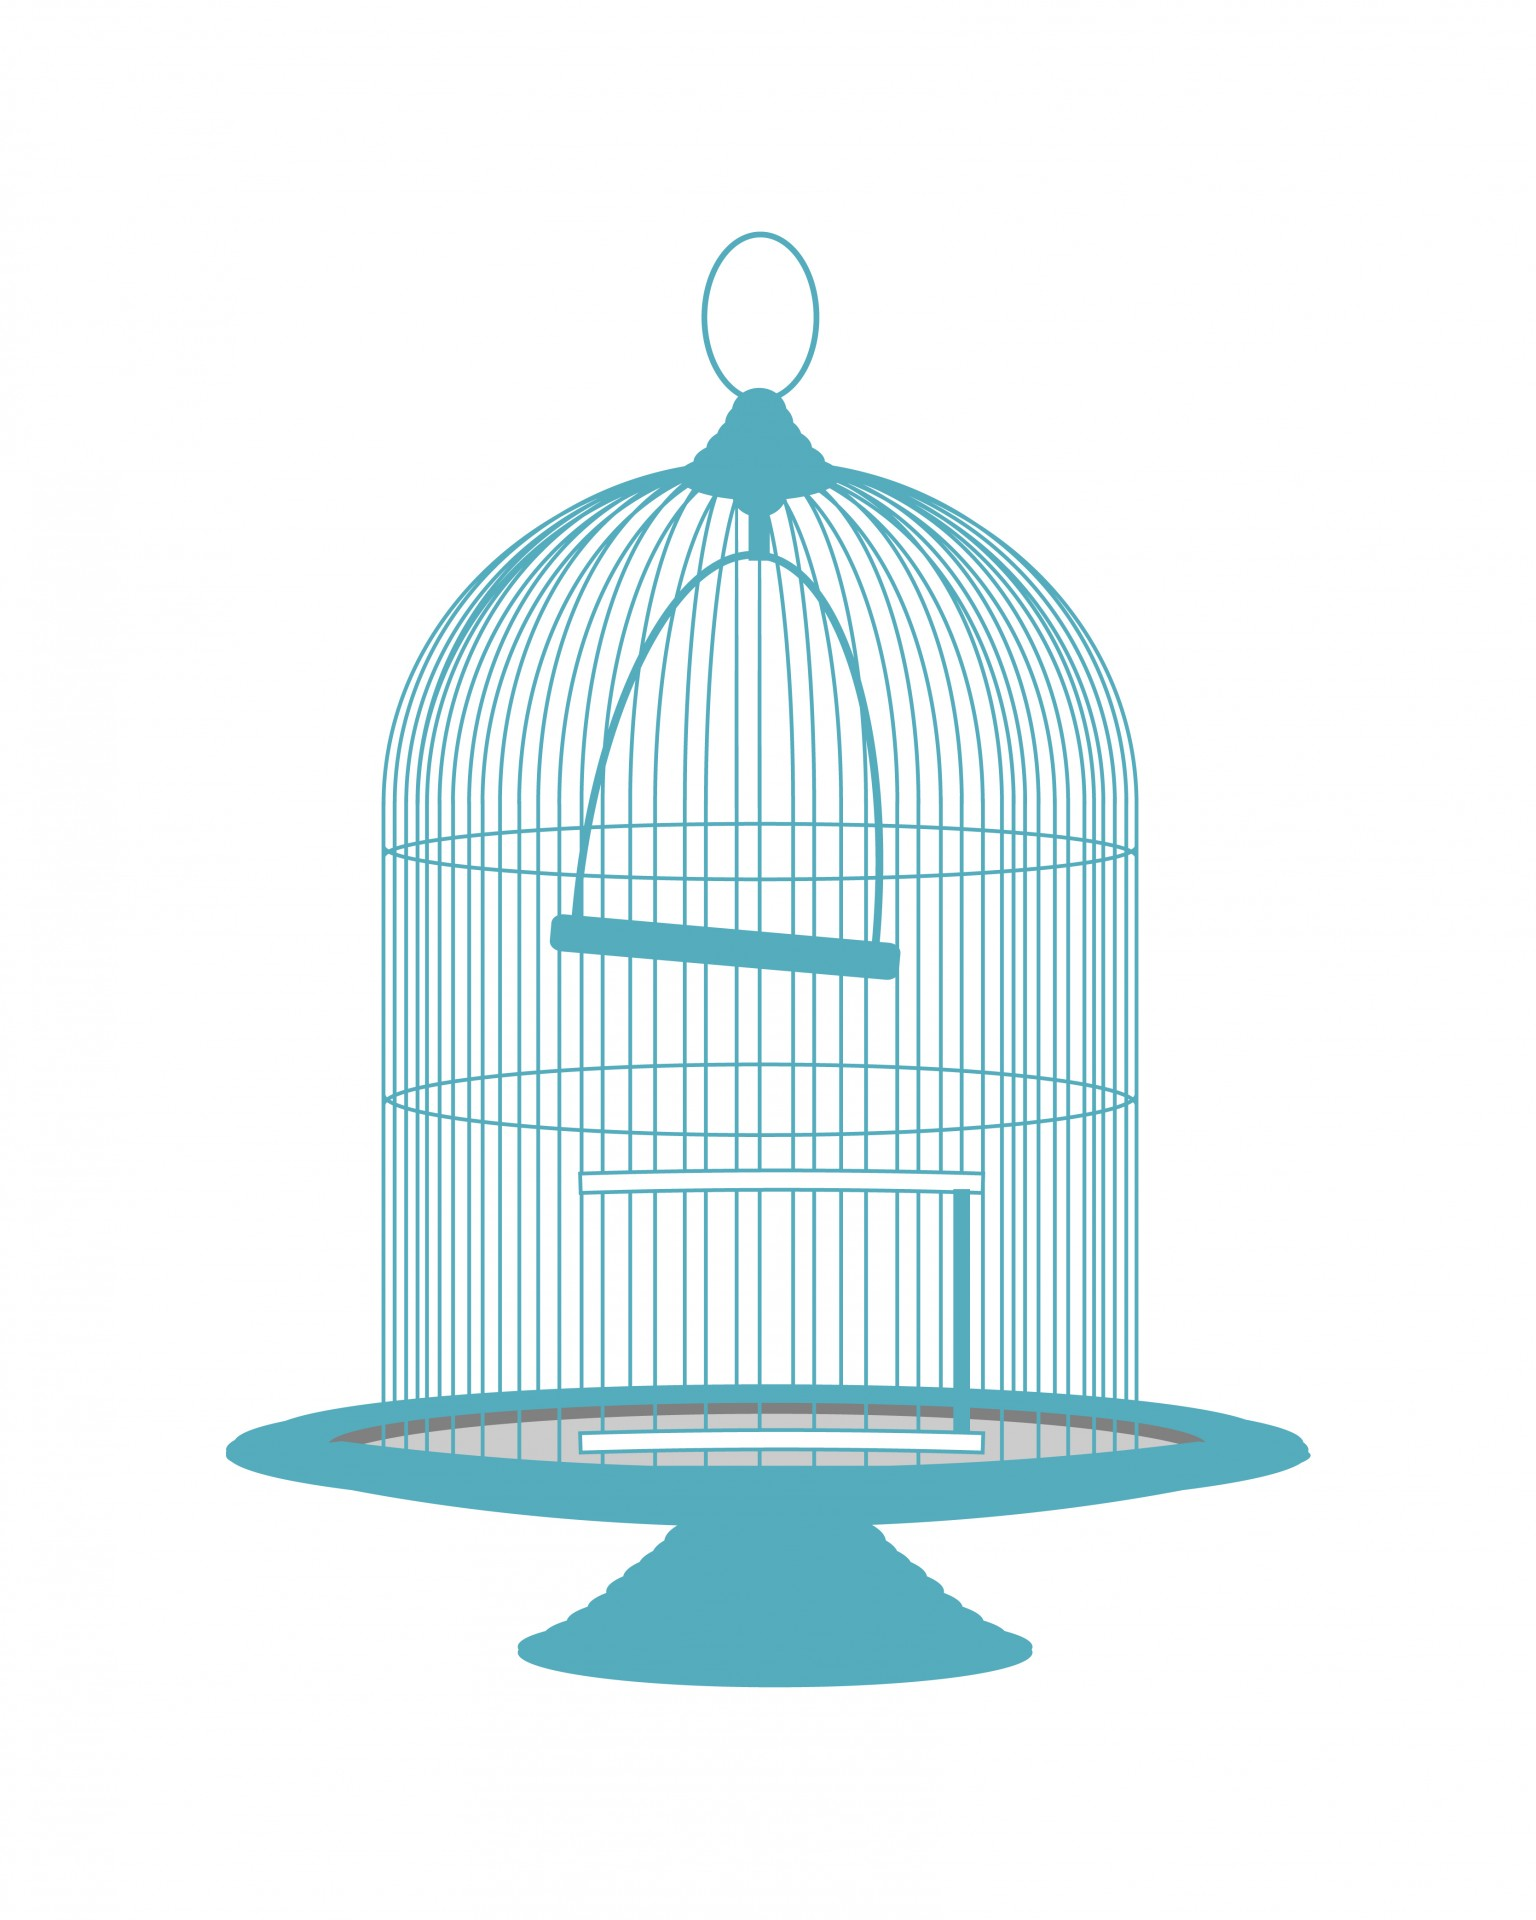 Cage clipart vintage. Blue birdcage free stock